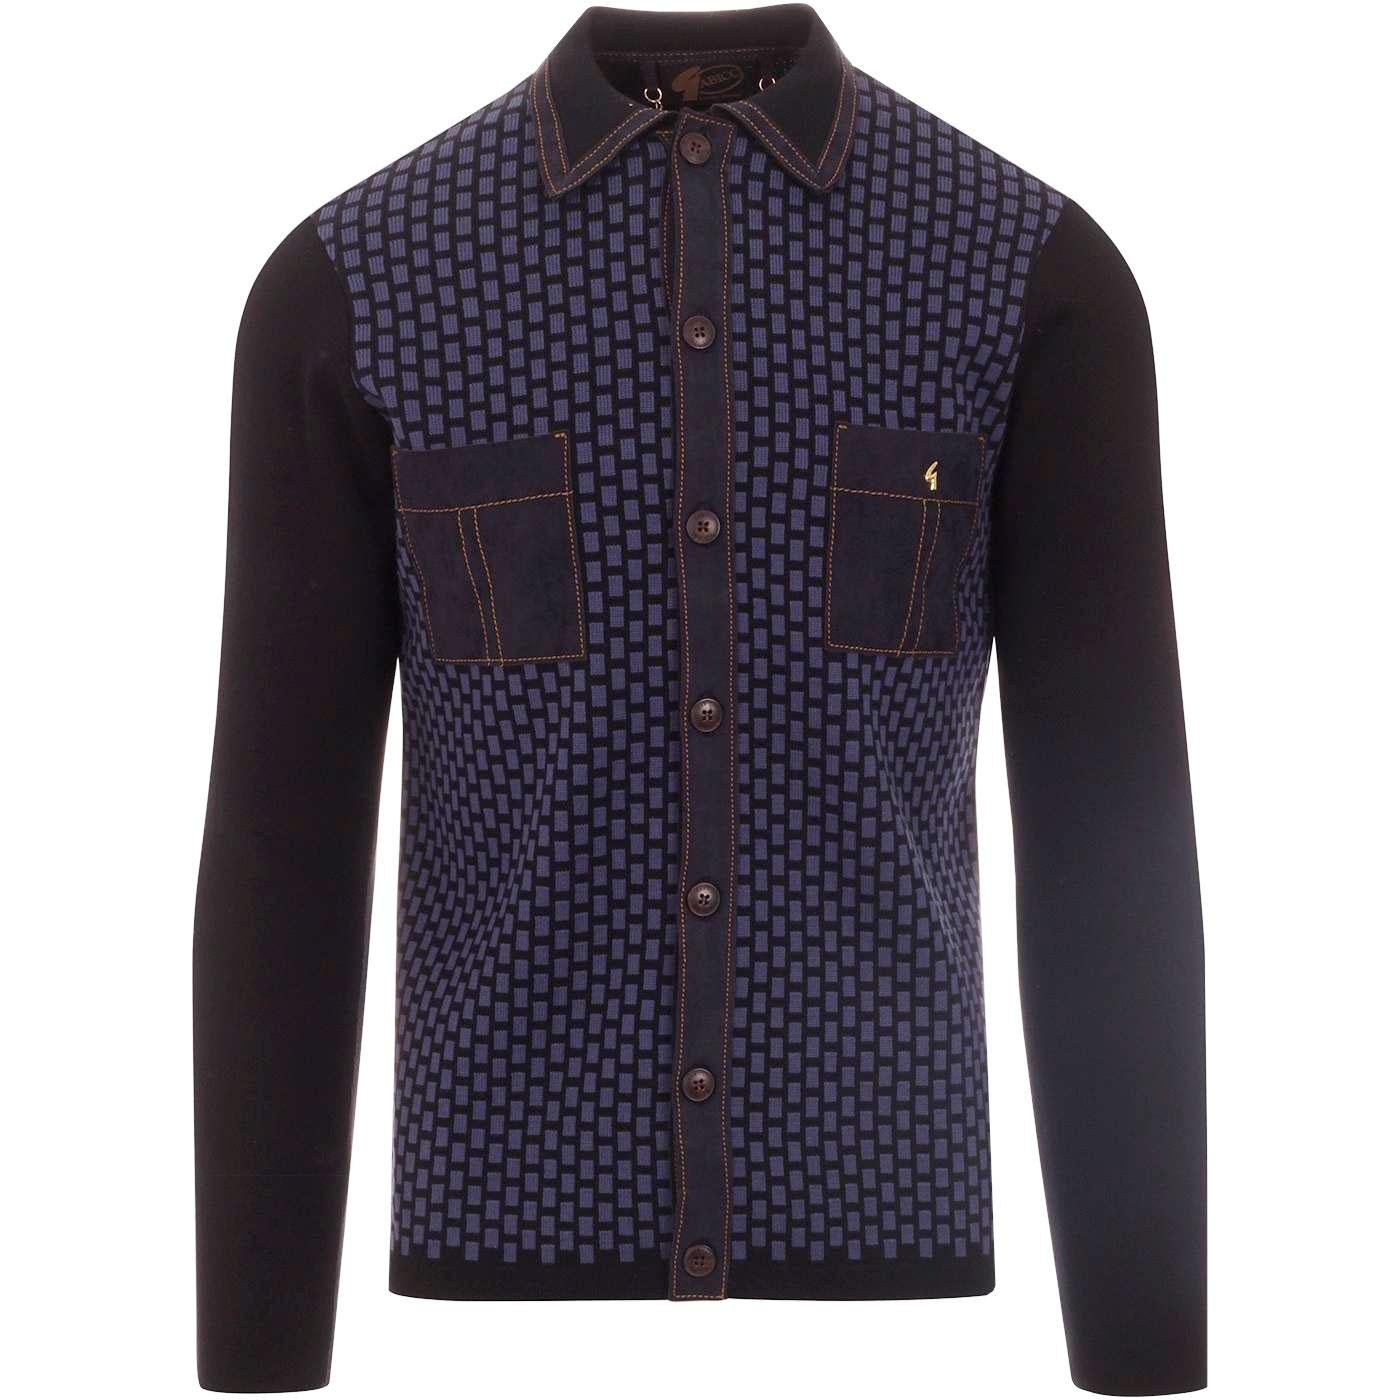 Bessemer GABICCI VINTAGE Ltd Edition Polo Cardigan